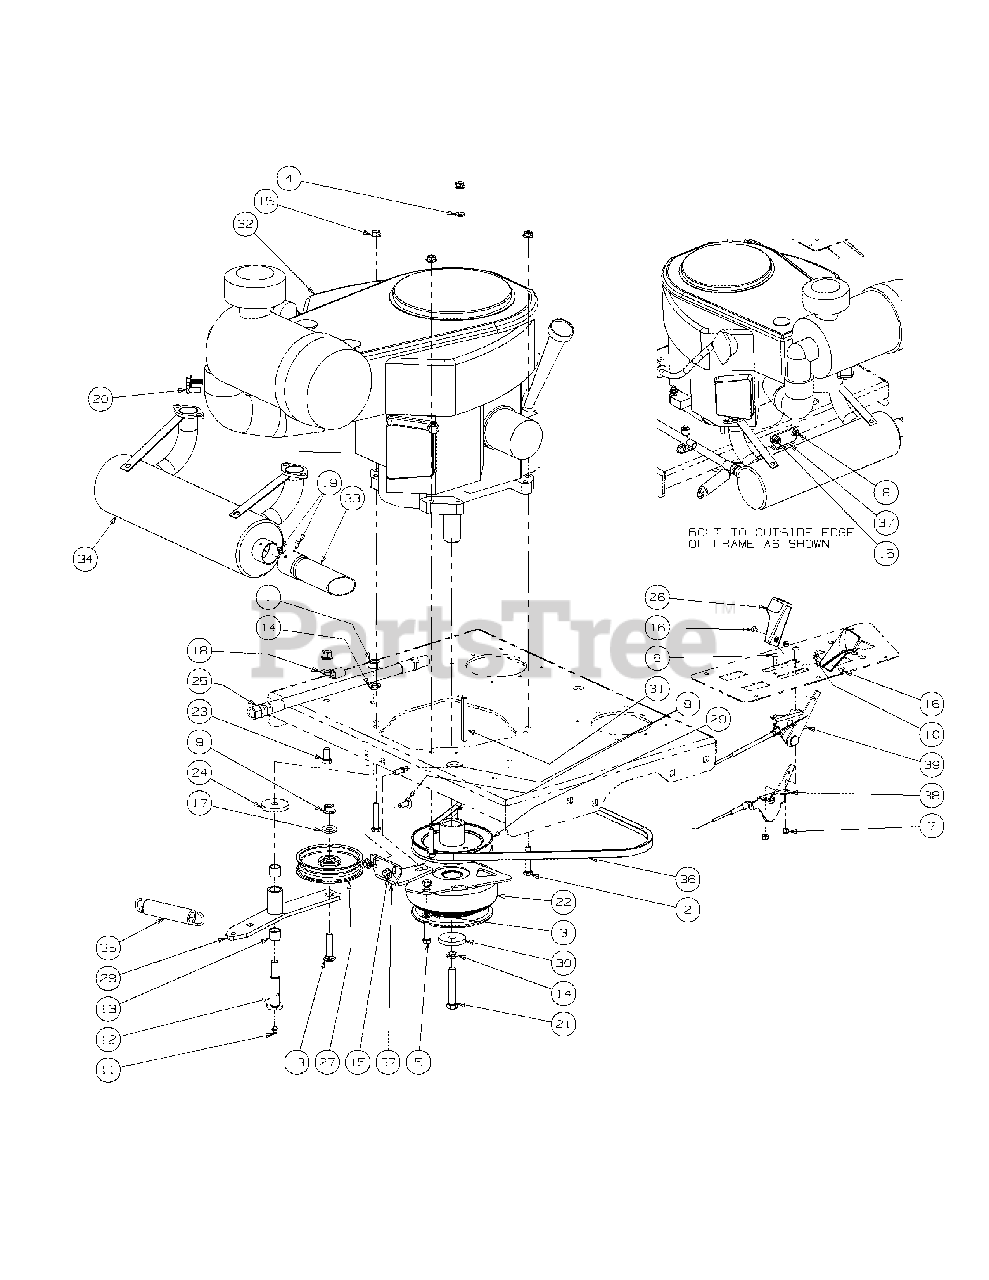 Cub Cadet Parts on the Engine Assembly Diagram for M54-KW